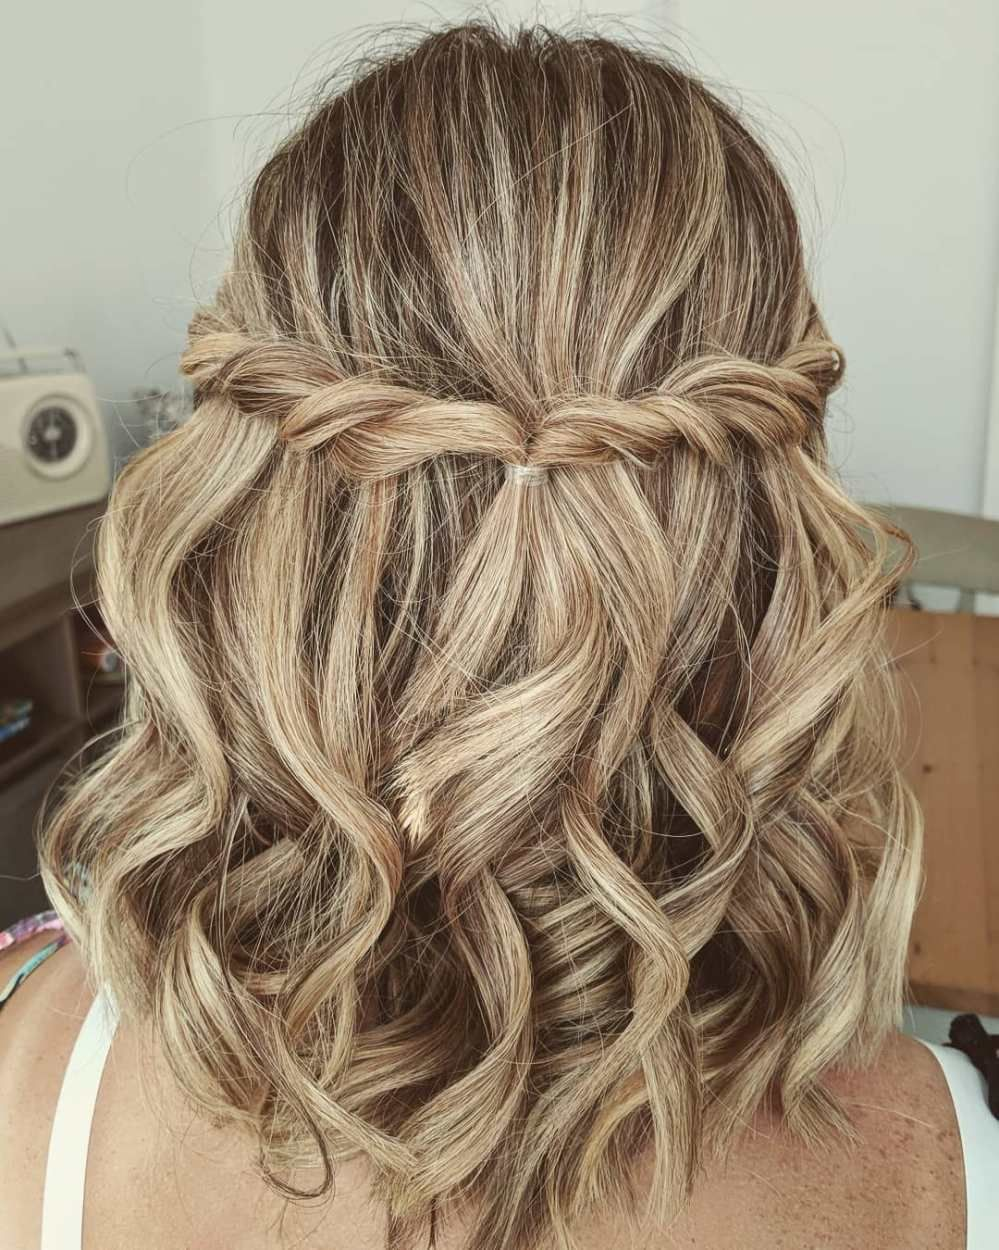 Hairstyles For Medium Hair Formal 50s 60 Trendiest Updos For